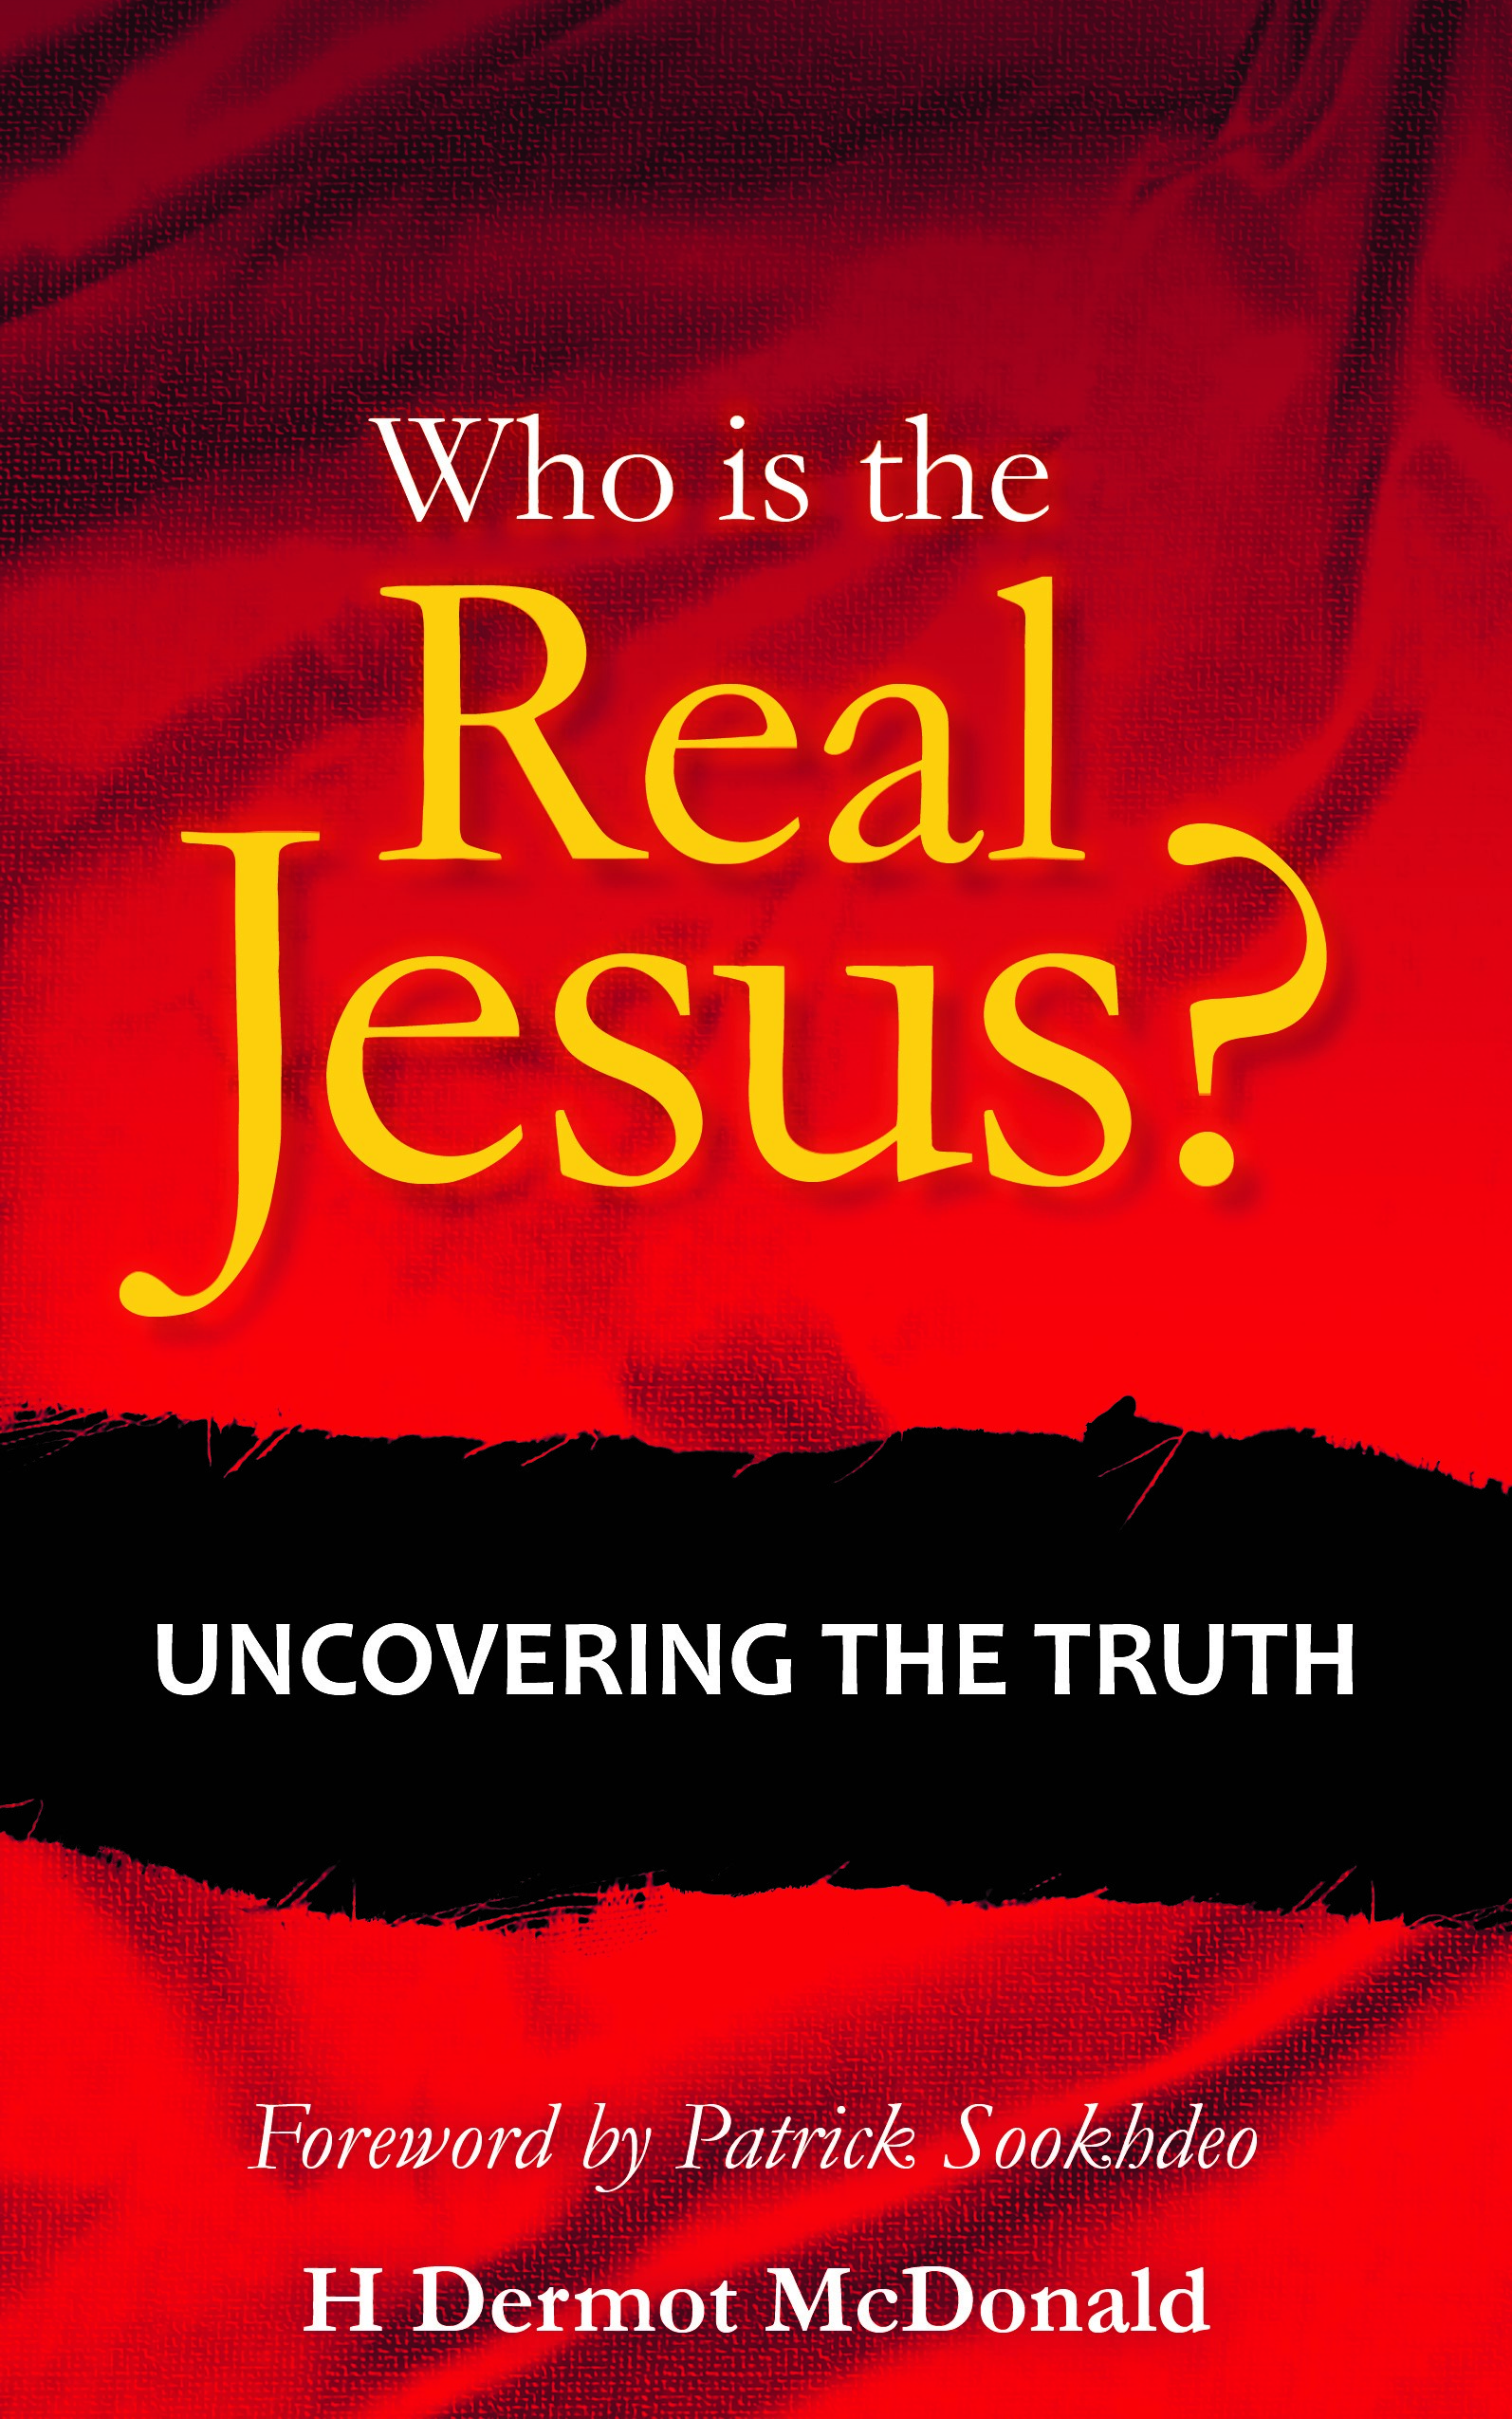 Who is the Real Jesus?